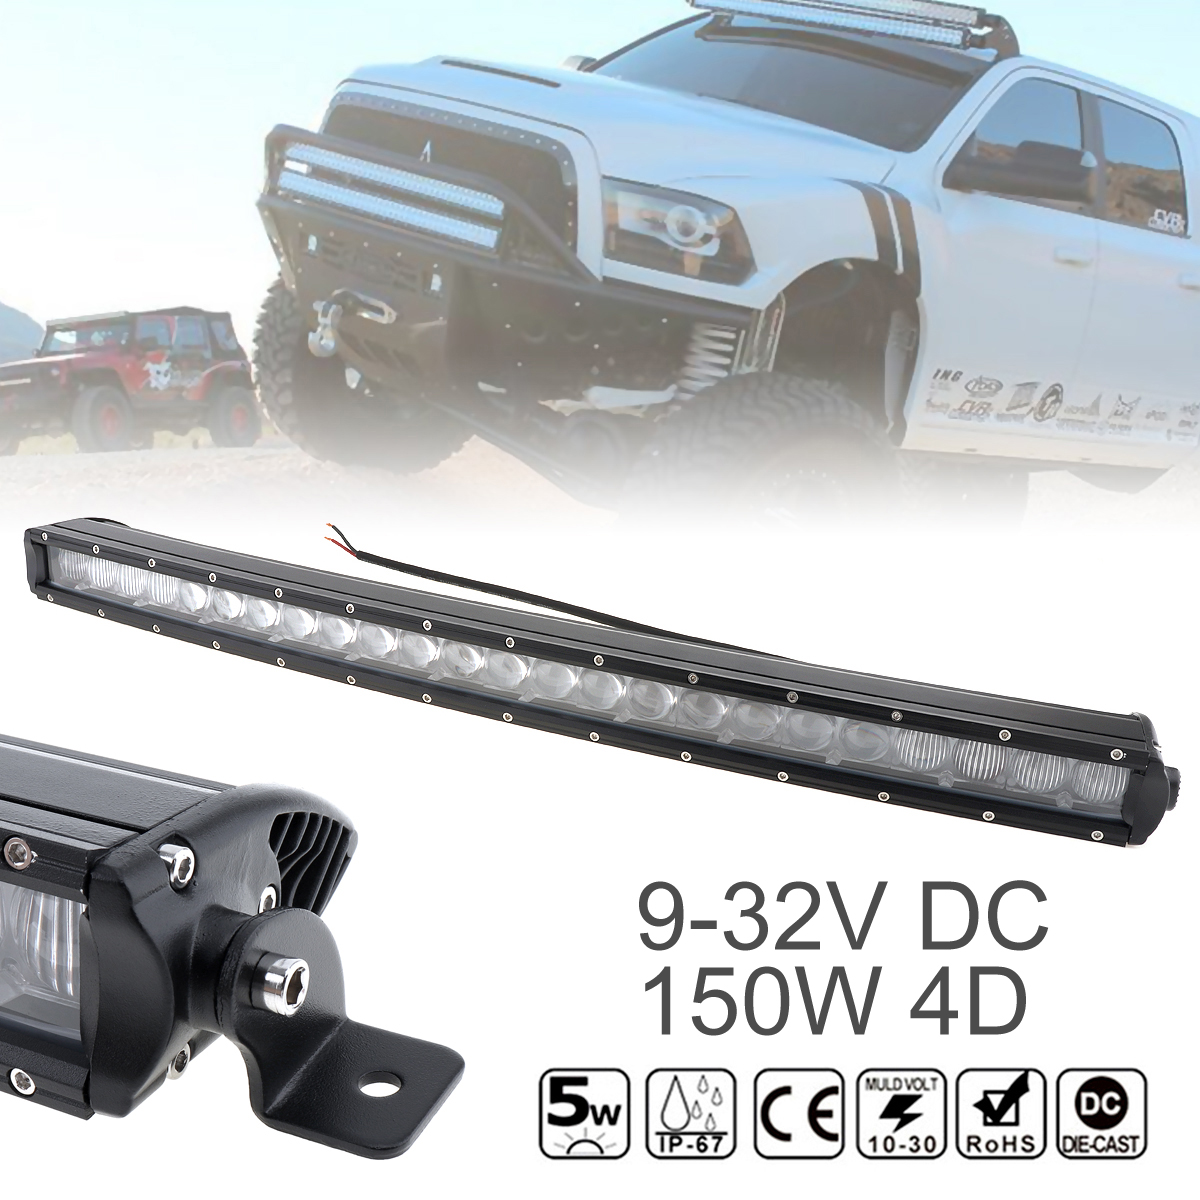 31 Inch Waterproof 50W Car LED Curved Worklight Bar 30x 4D Combo Offroad Light Driving Lamp for Truck SUV 4X4 4WD ATV